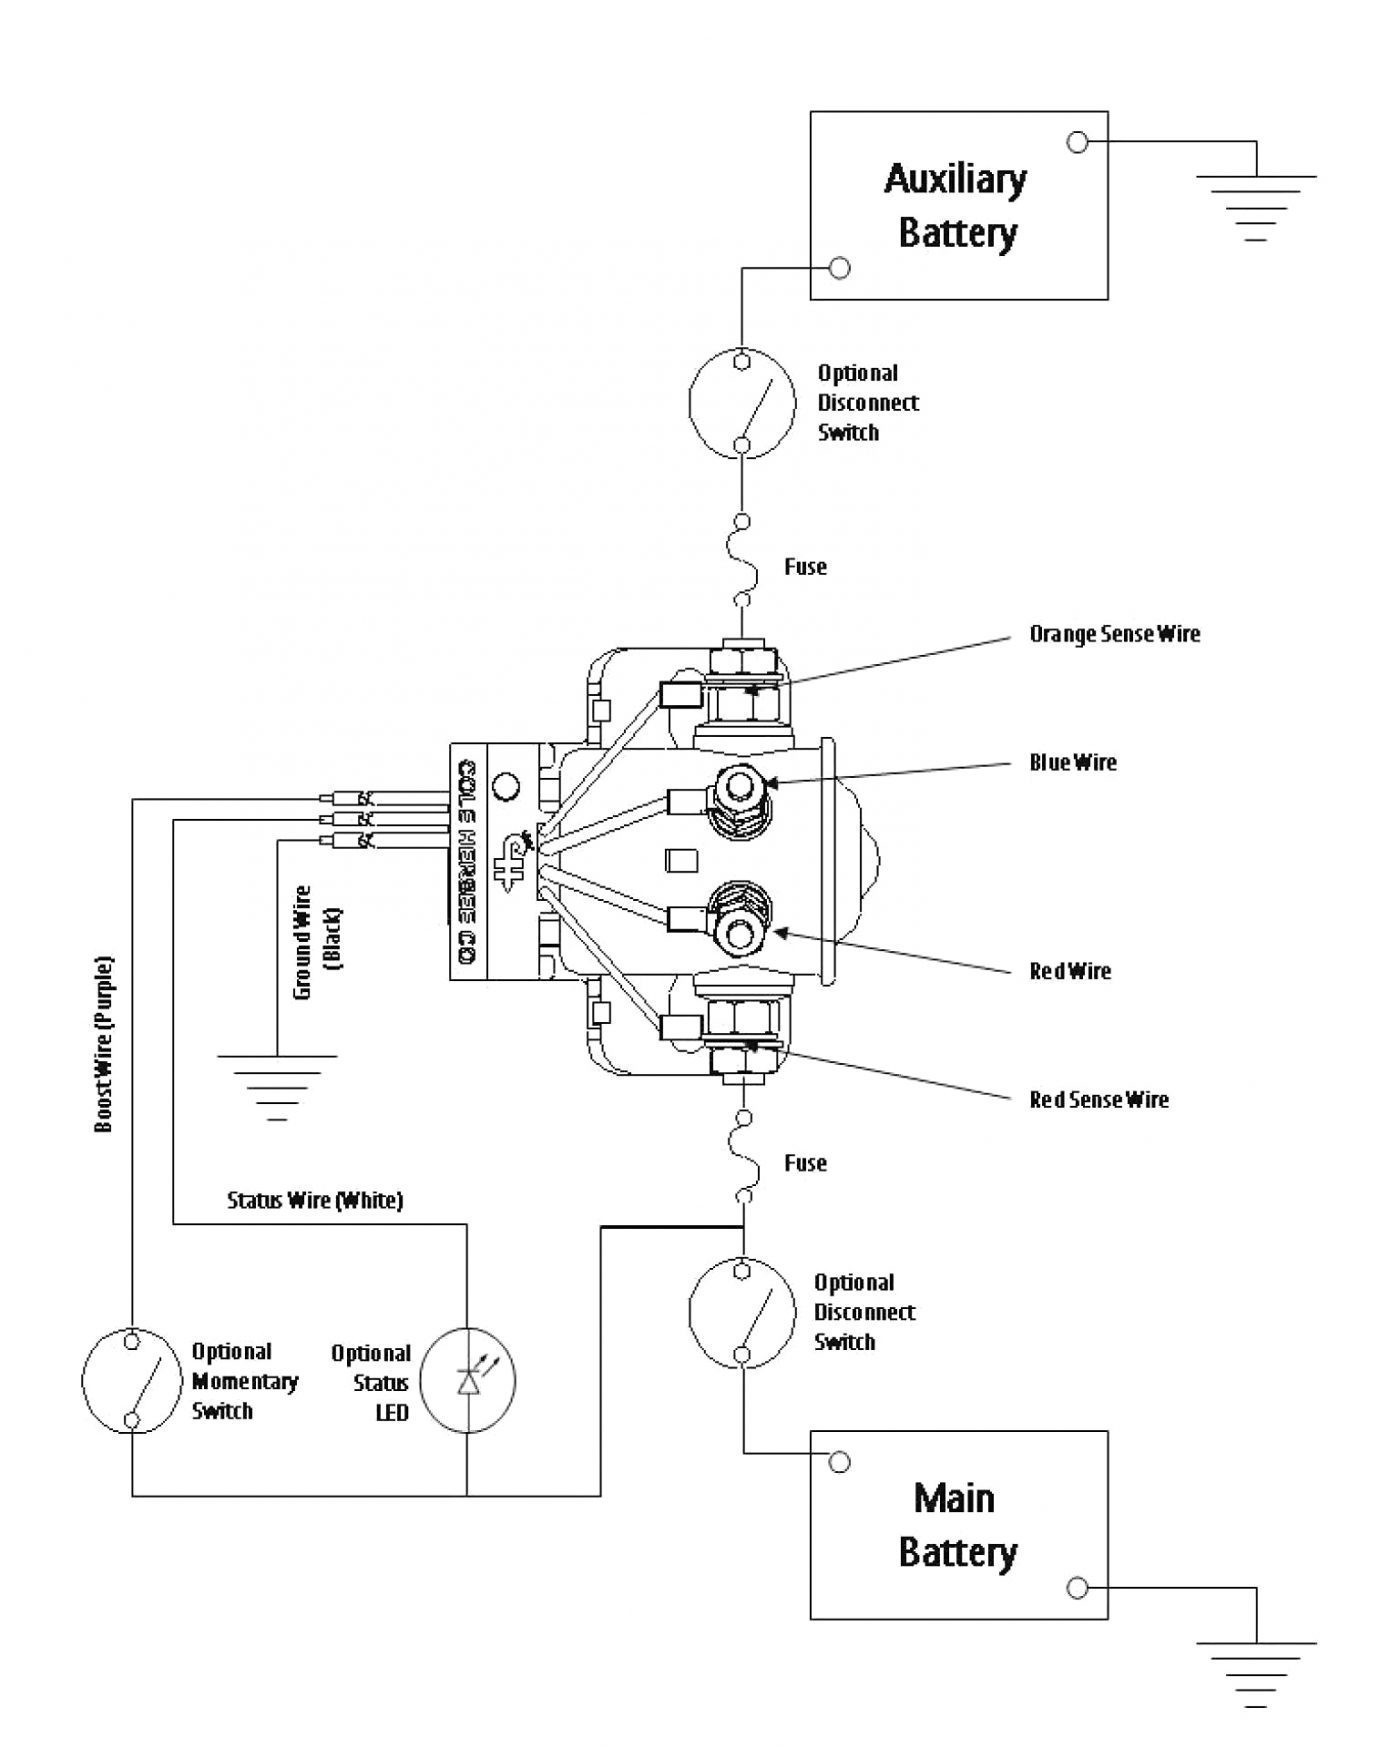 Superwinch Lt3000 Atv Wiring Diagram Inspirational 42 Volt Battery Wiring Diagram Explore Schematic Wiring Diagram